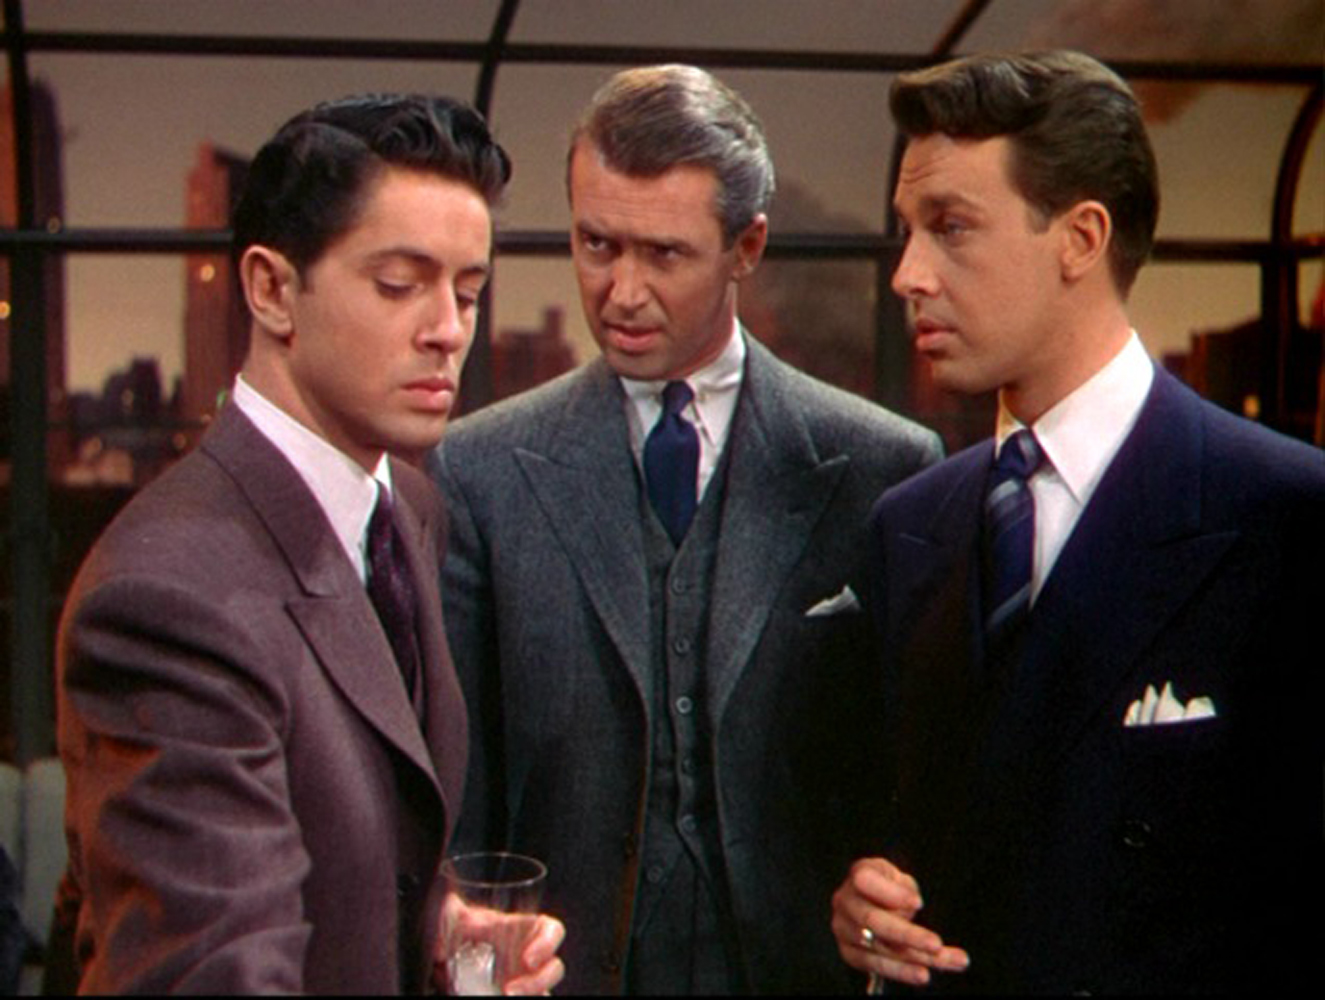 Professor James Stewart pieces together what his students Farley Granger and John Dall have done in Rope (1948)